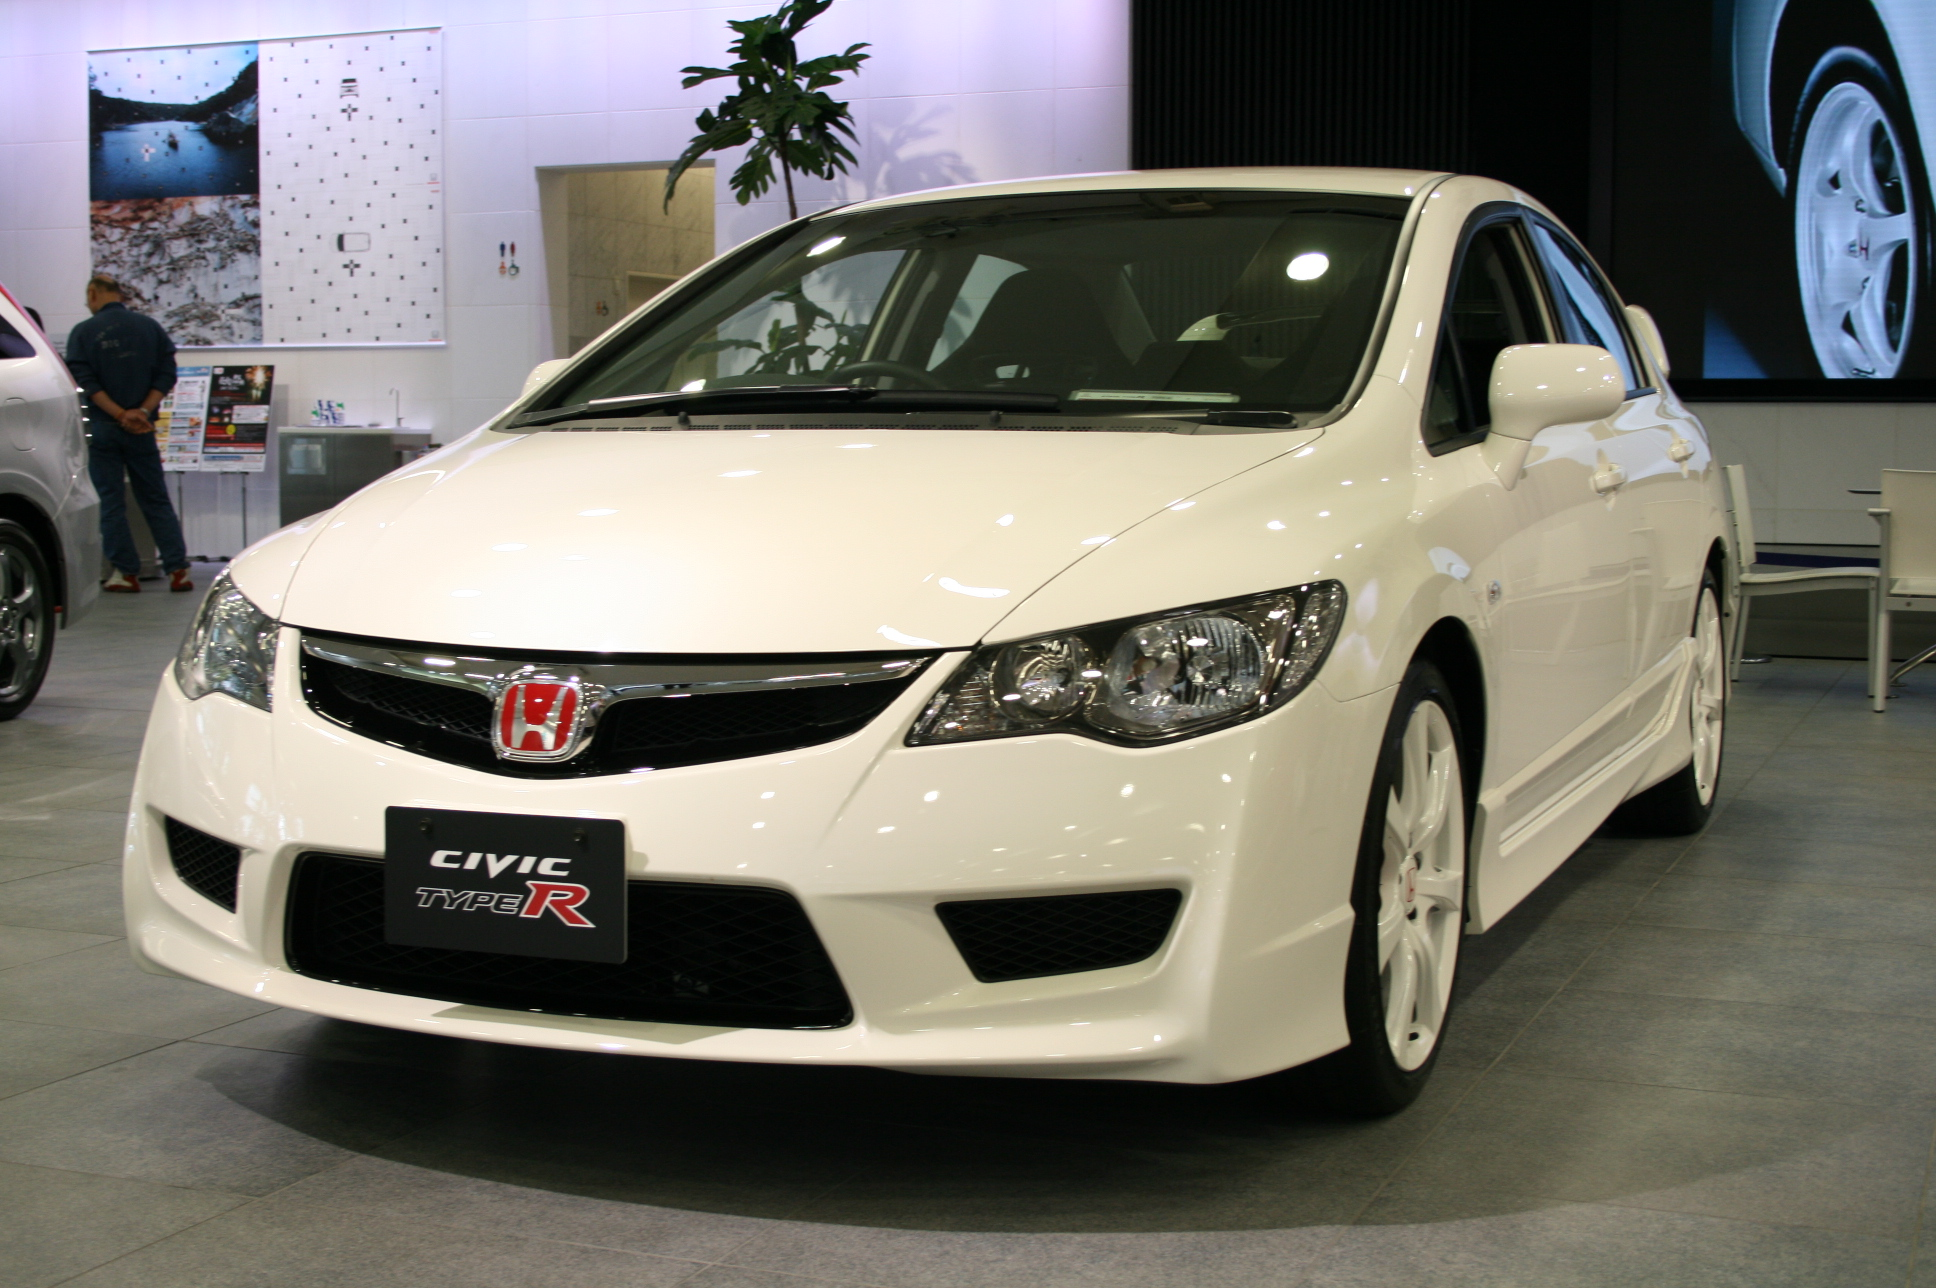 File:Honda Civic typeR.jpg - Wikimedia Commons